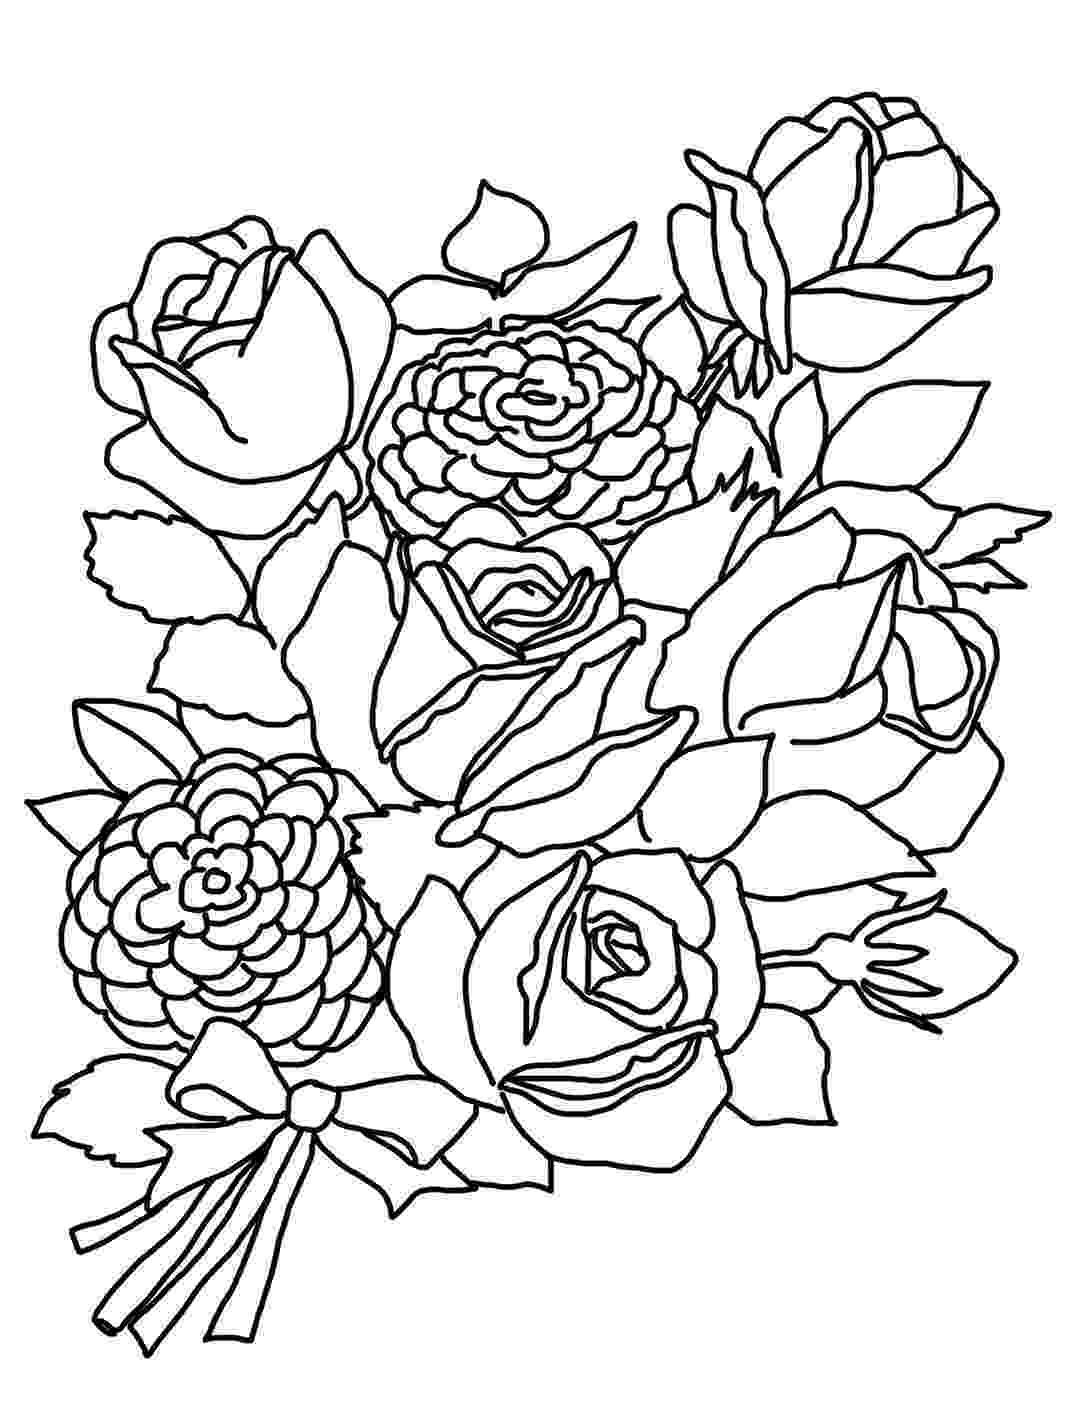 flowers colouring free printable flower coloring pages for kids cool2bkids colouring flowers 1 1